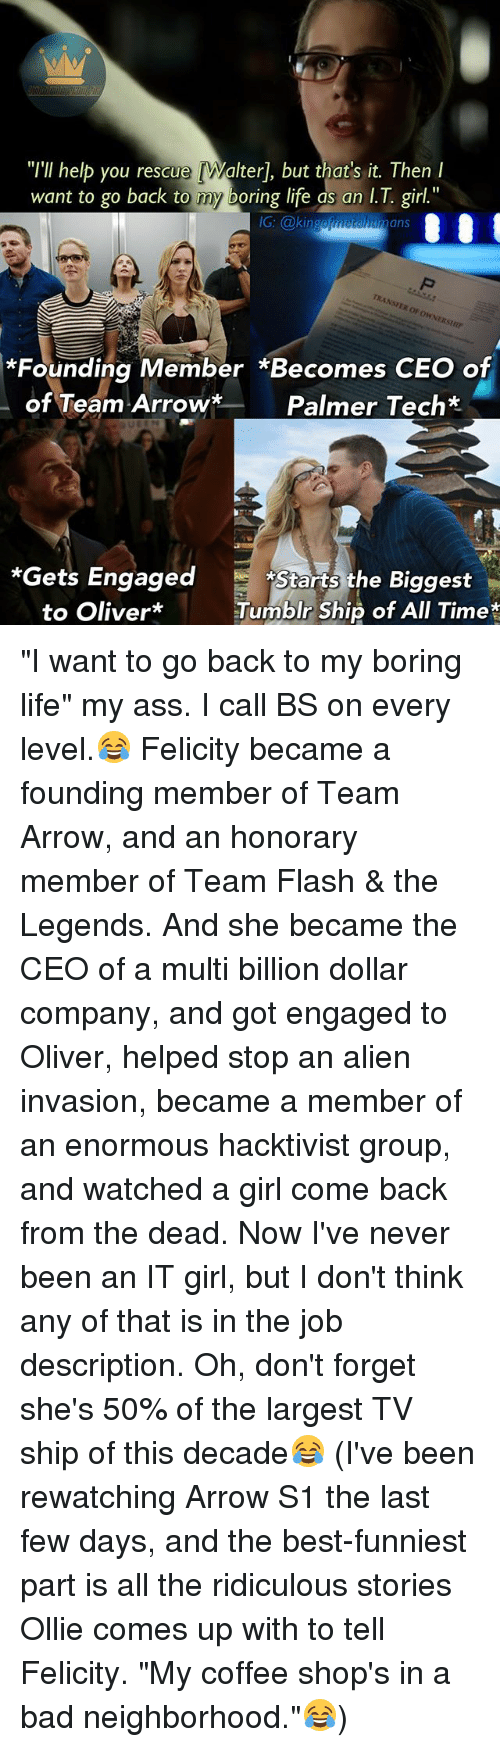 """Ass, Bad, and Life: """"I'll help you rescue [Walter], but that's it. Then  want to go back to my boring life as an I.T. girl.""""  IG: @kingef  metahumans  Op  *Founding Member *Becomes CEO of  of Team Arrow*  Palmer Tech*  *Gets Engaged  Starts the Biggest  Tumblr Ship of All Time  to Oliver*Tumbir Ship of All Time* """"I want to go back to my boring life"""" my ass. I call BS on every level.😂 Felicity became a founding member of Team Arrow, and an honorary member of Team Flash & the Legends. And she became the CEO of a multi billion dollar company, and got engaged to Oliver, helped stop an alien invasion, became a member of an enormous hacktivist group, and watched a girl come back from the dead. Now I've never been an IT girl, but I don't think any of that is in the job description. Oh, don't forget she's 50% of the largest TV ship of this decade😂 (I've been rewatching Arrow S1 the last few days, and the best-funniest part is all the ridiculous stories Ollie comes up with to tell Felicity. """"My coffee shop's in a bad neighborhood.""""😂)"""